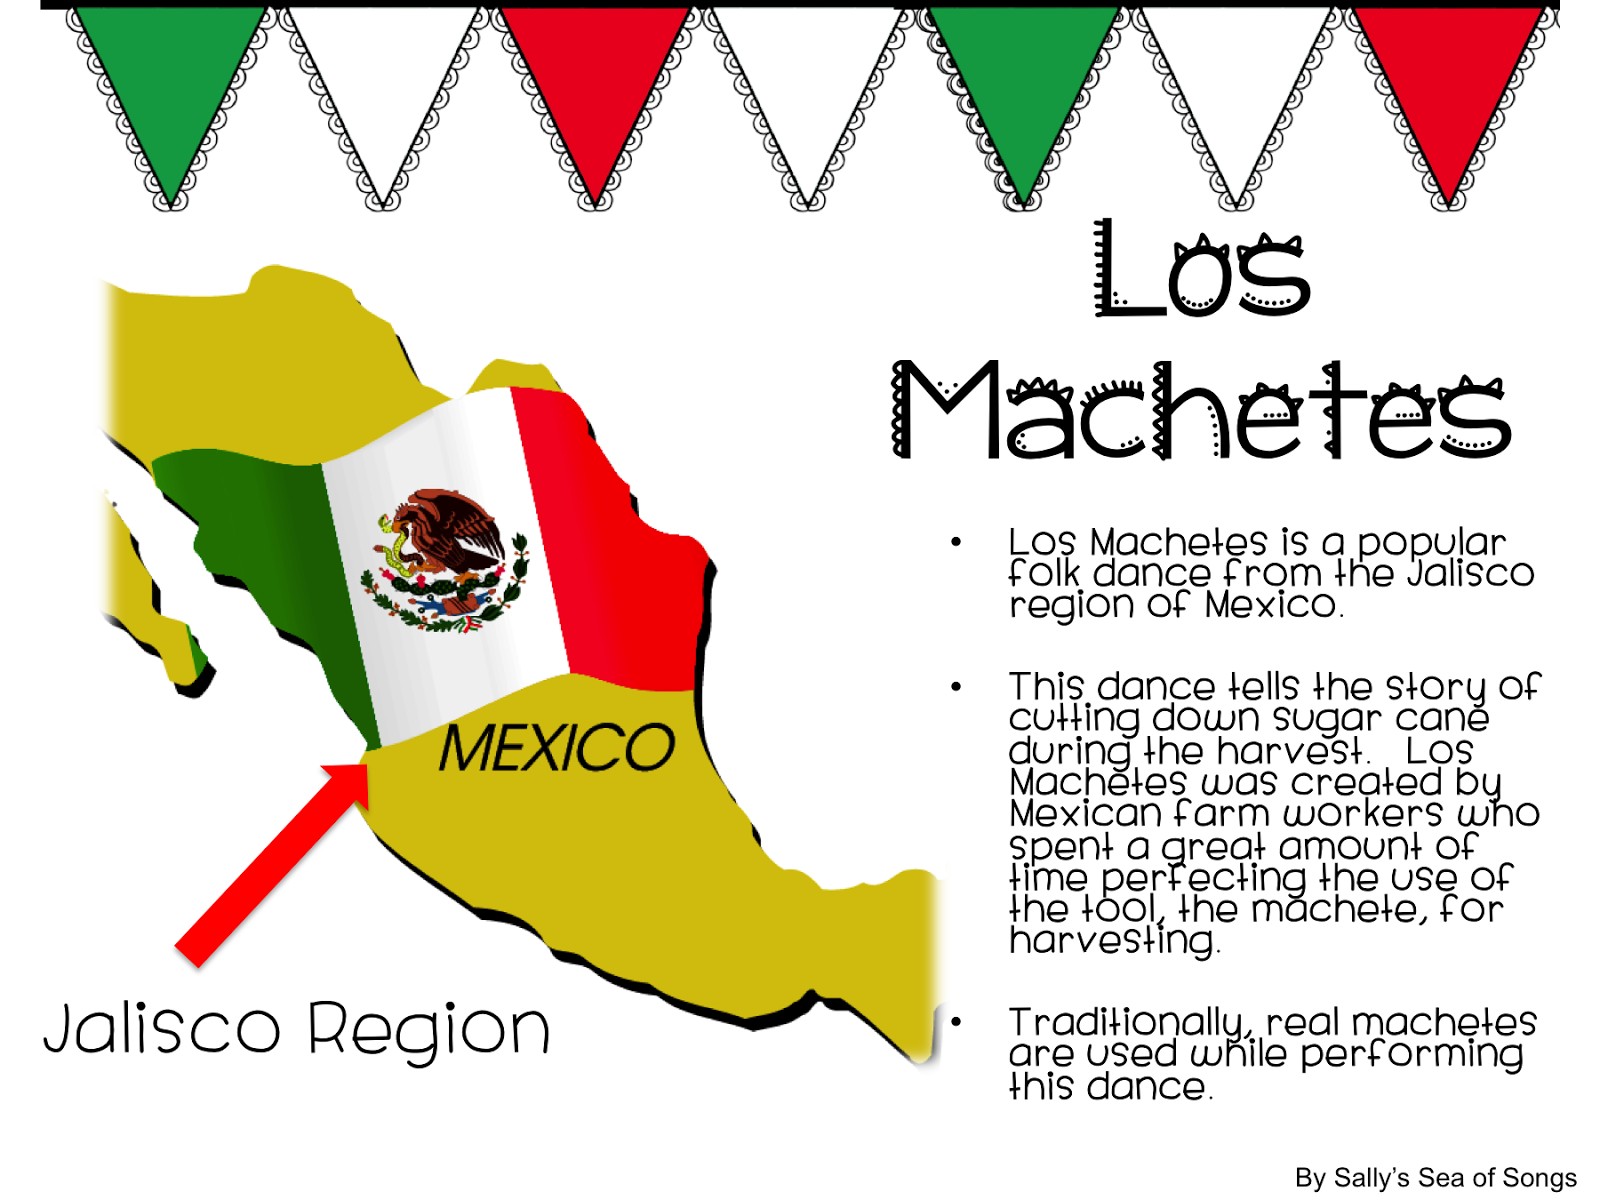 Background information on mexico - Background Information On Los Machetes From Www Musiccenter Org